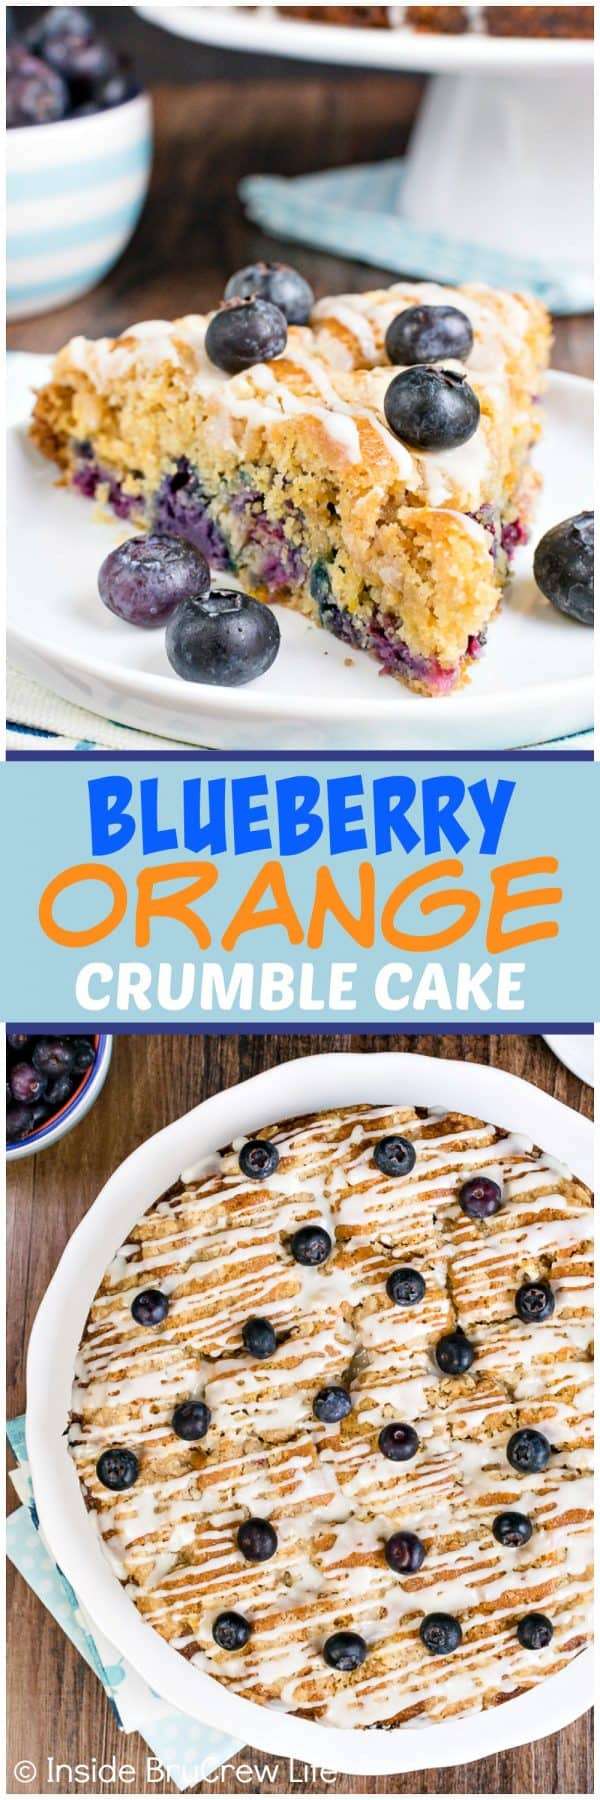 Blueberry Orange Crumble Cake - fresh blueberries, streusel, and glaze make this soft coffee cake taste amazing. Make this easy recipe for breakfast or brunch! #coffeecake #blueberry #orange #breakfast #brunch #mothersday #homemade #recipe #easy